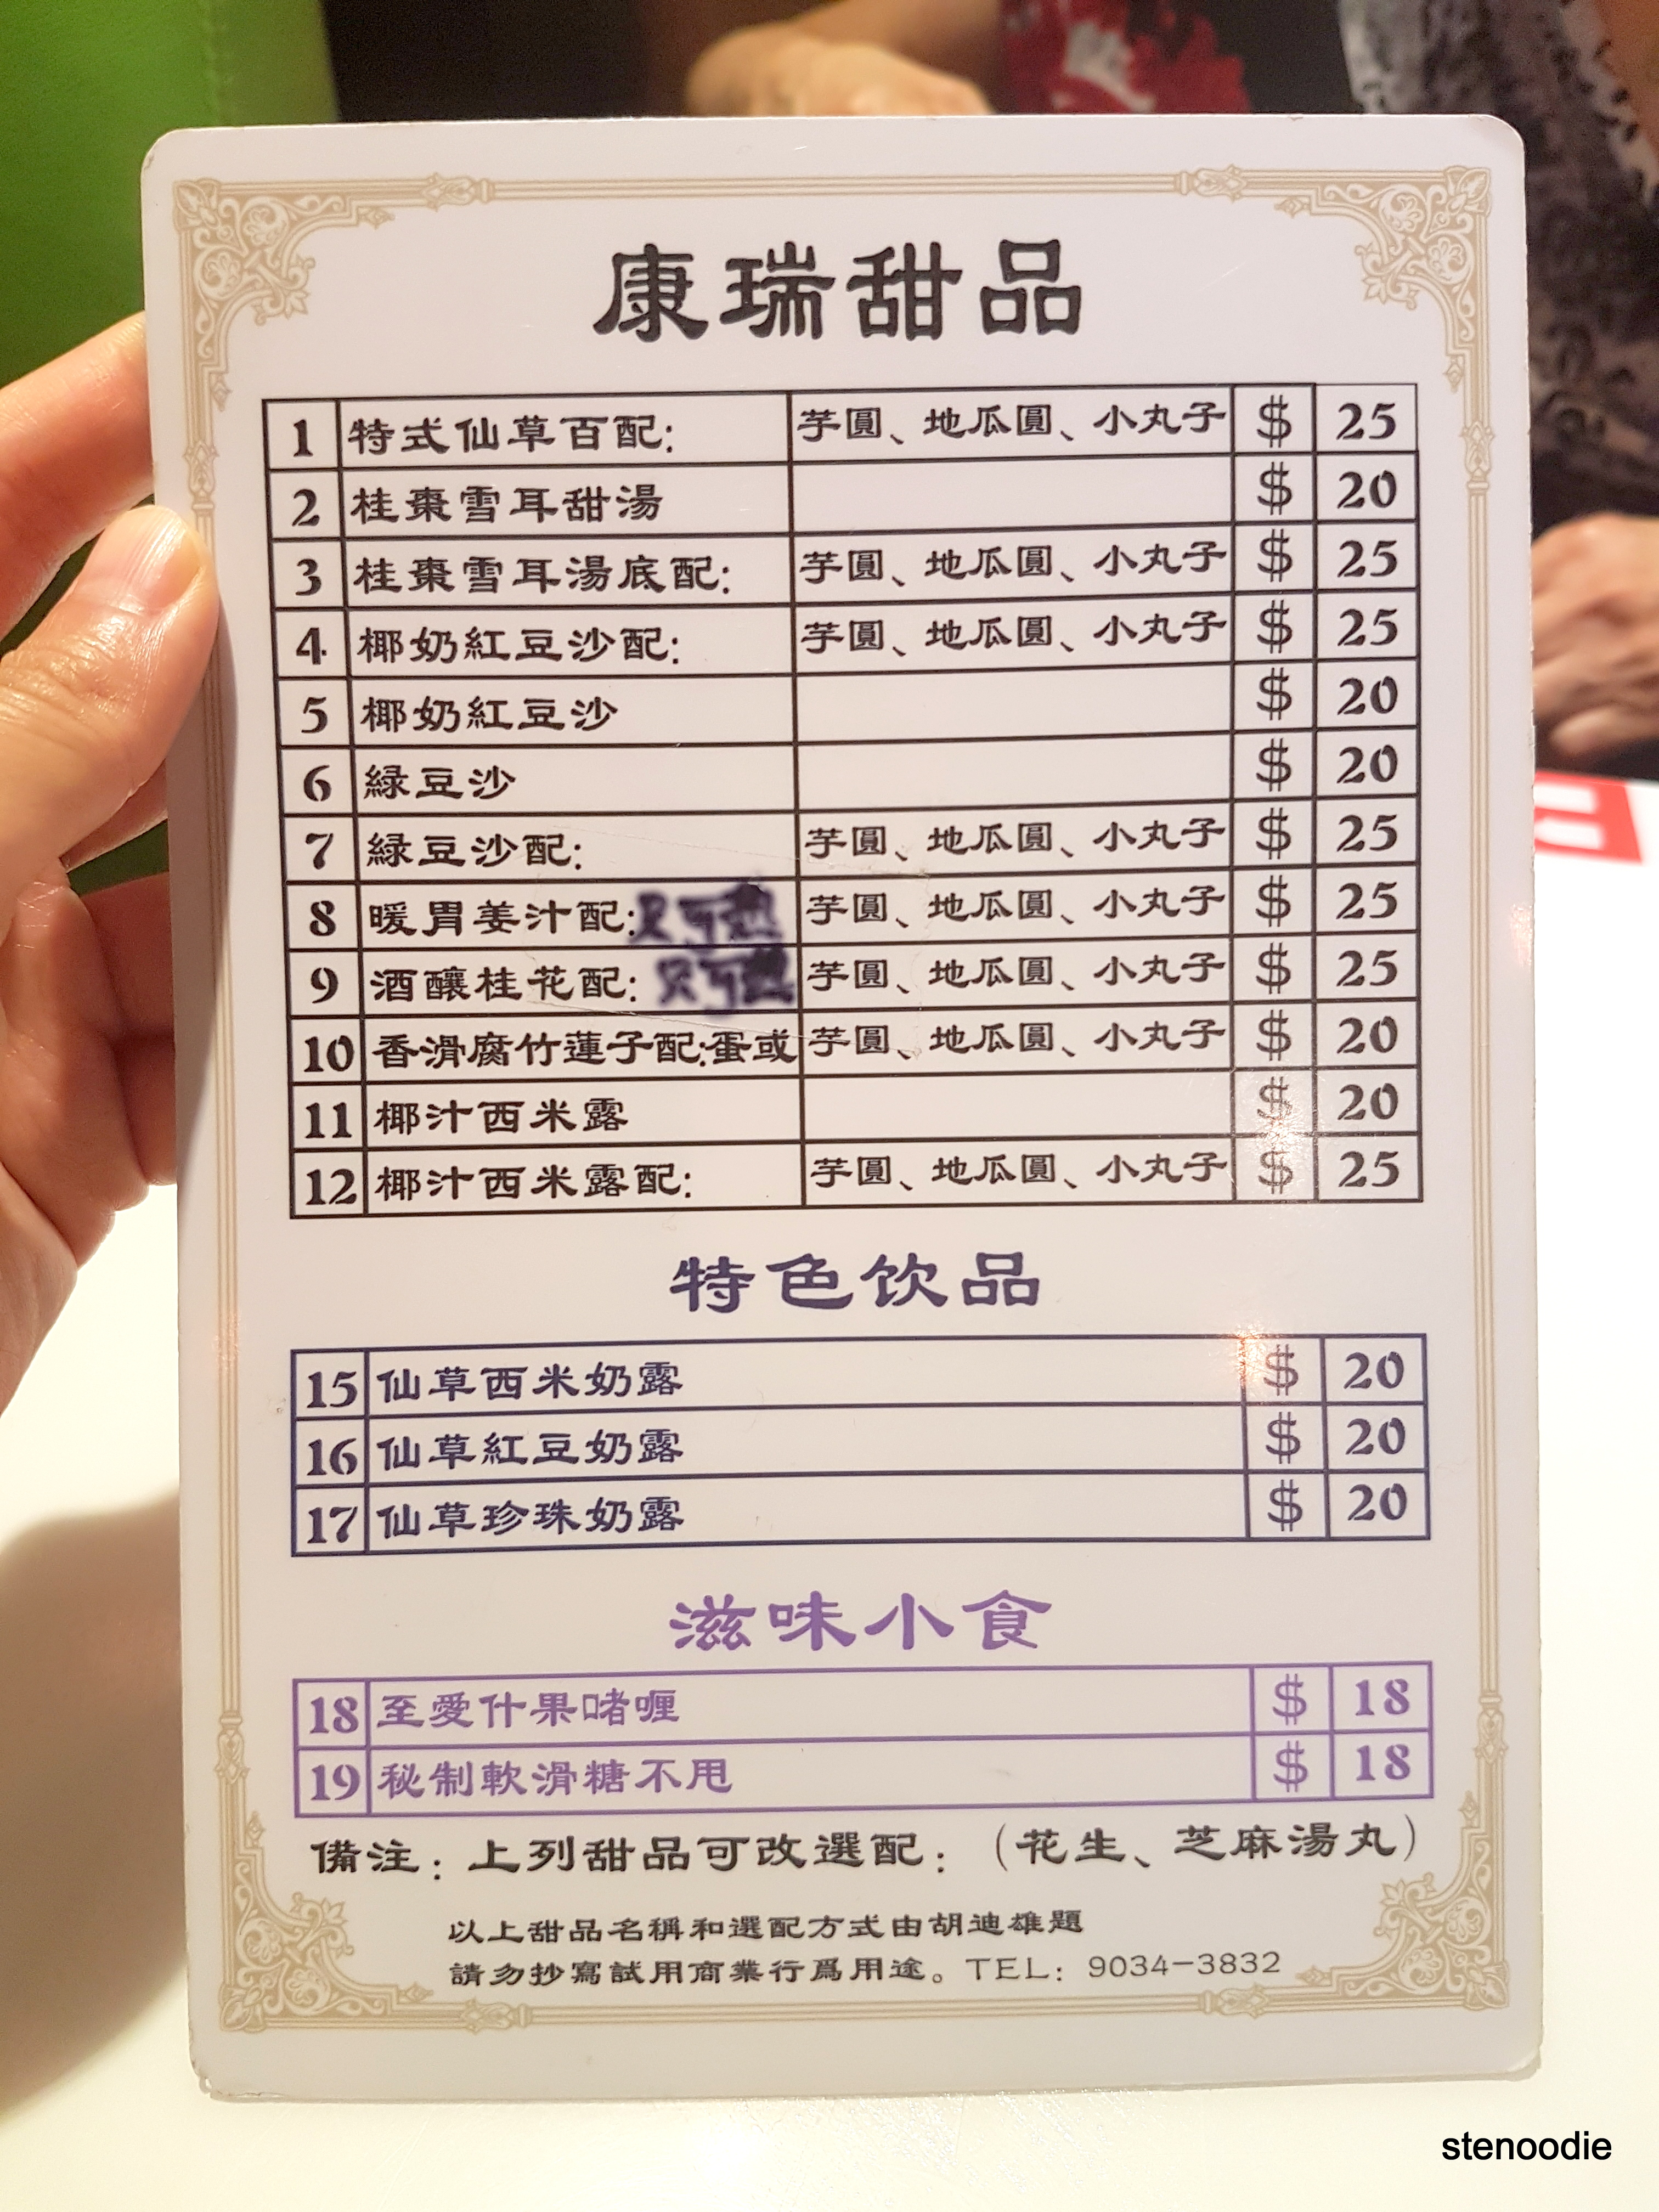 康瑞甜品 menu and prices